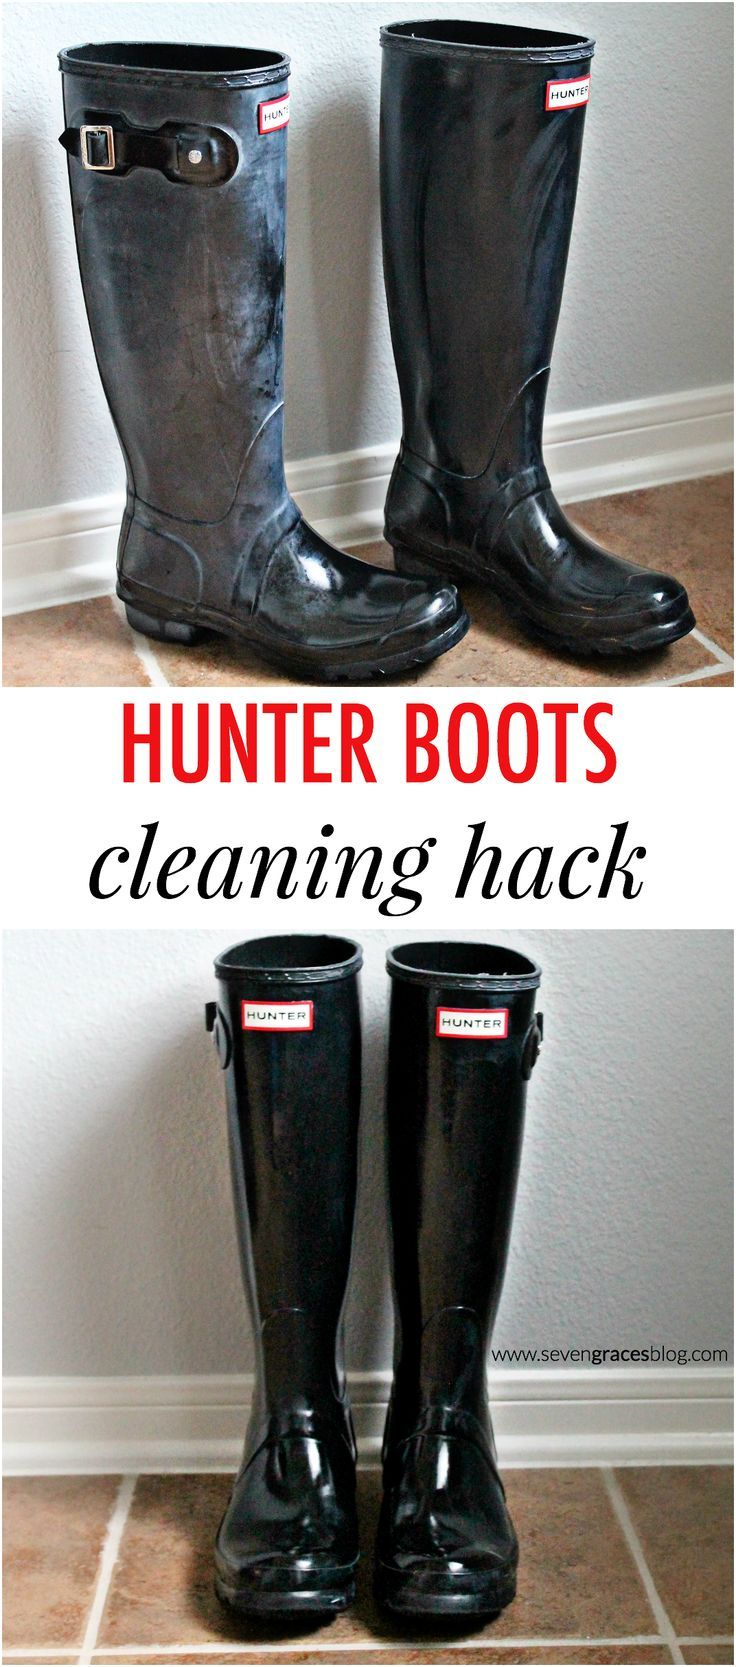 Hunter Boots Cleaning Hack. How to clean Hunter boots with household cleaning items.